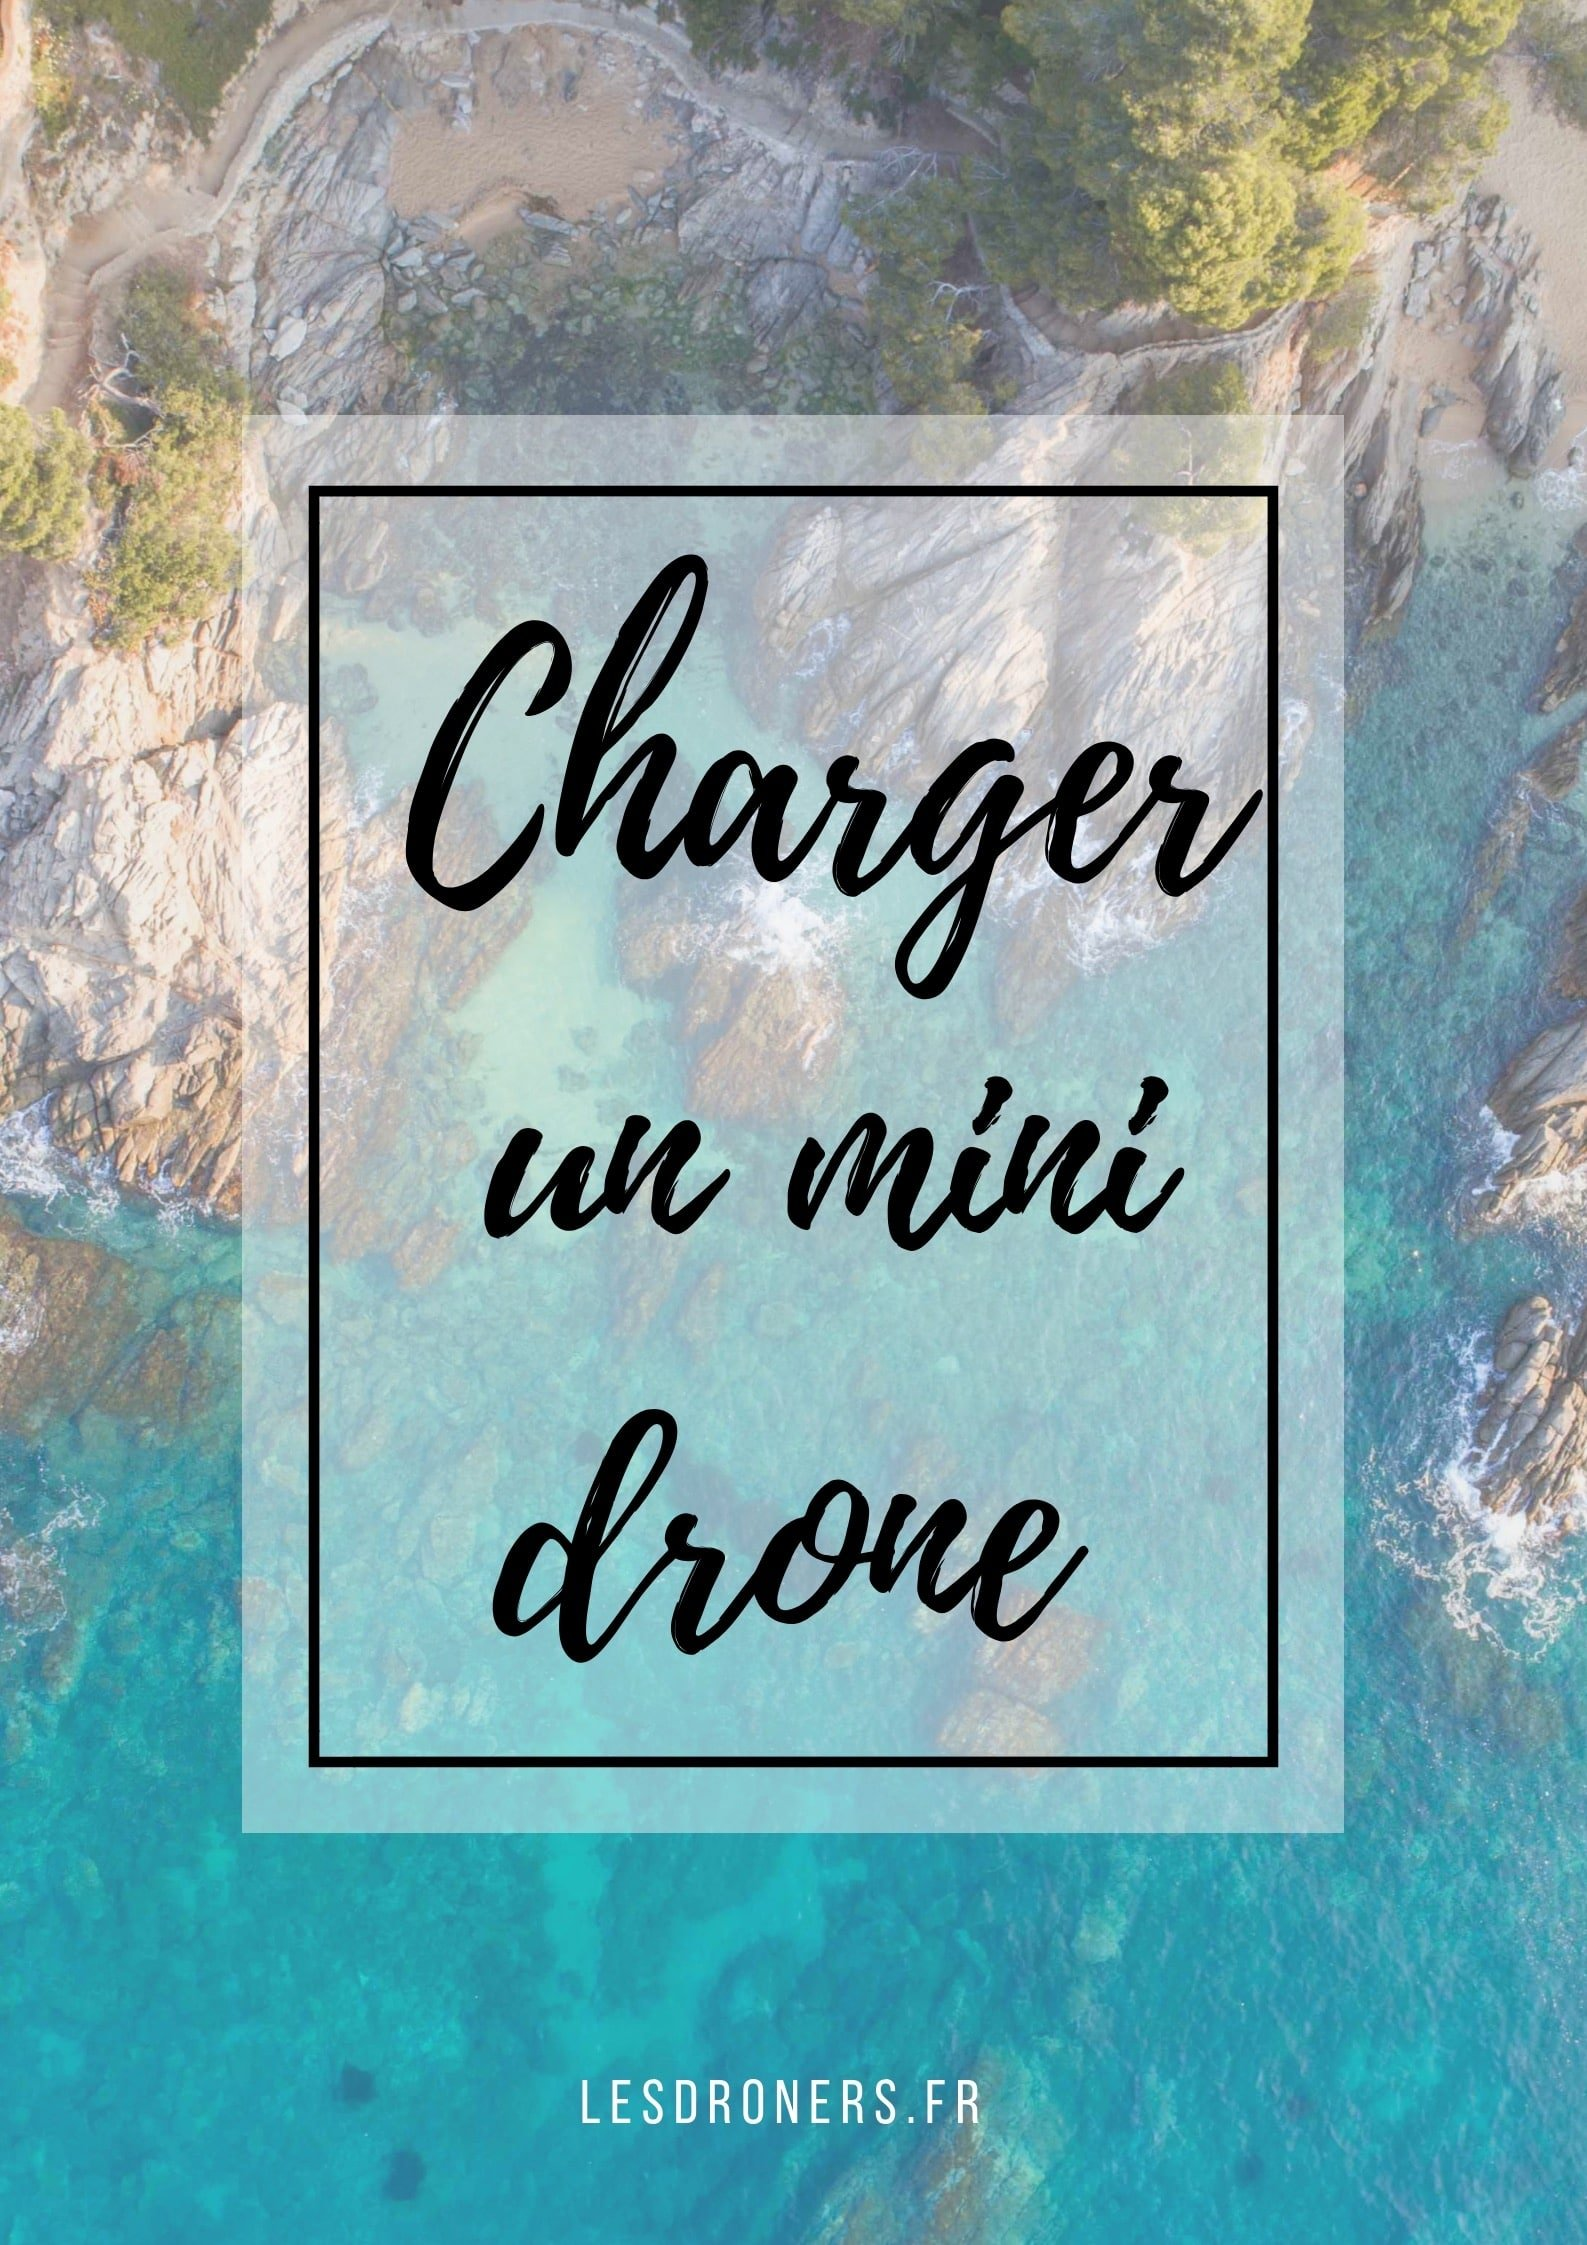 comment charger un mini drone 001